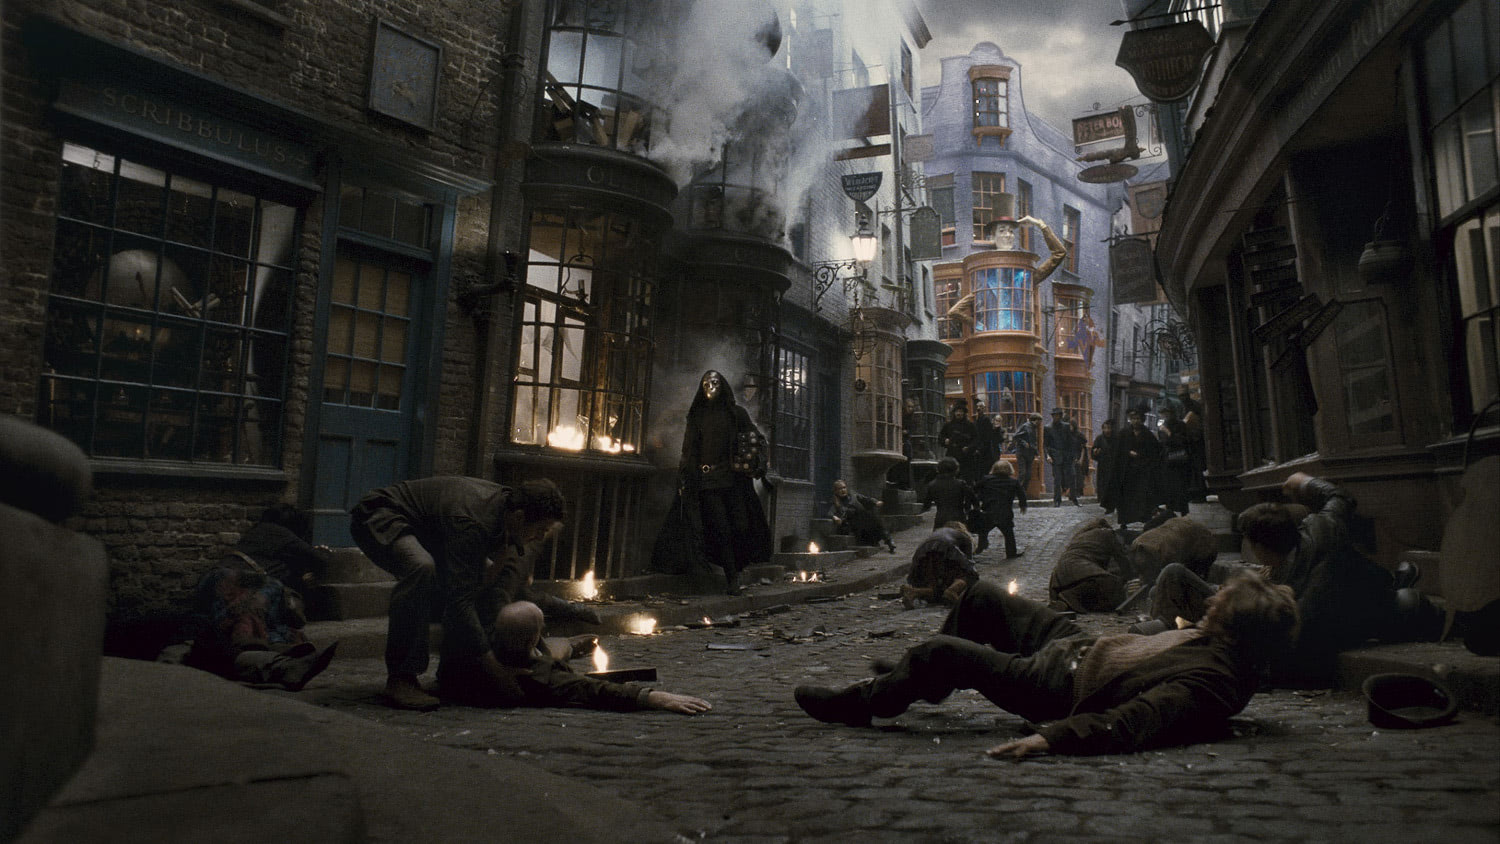 Death Eaters invade Diagon Alley